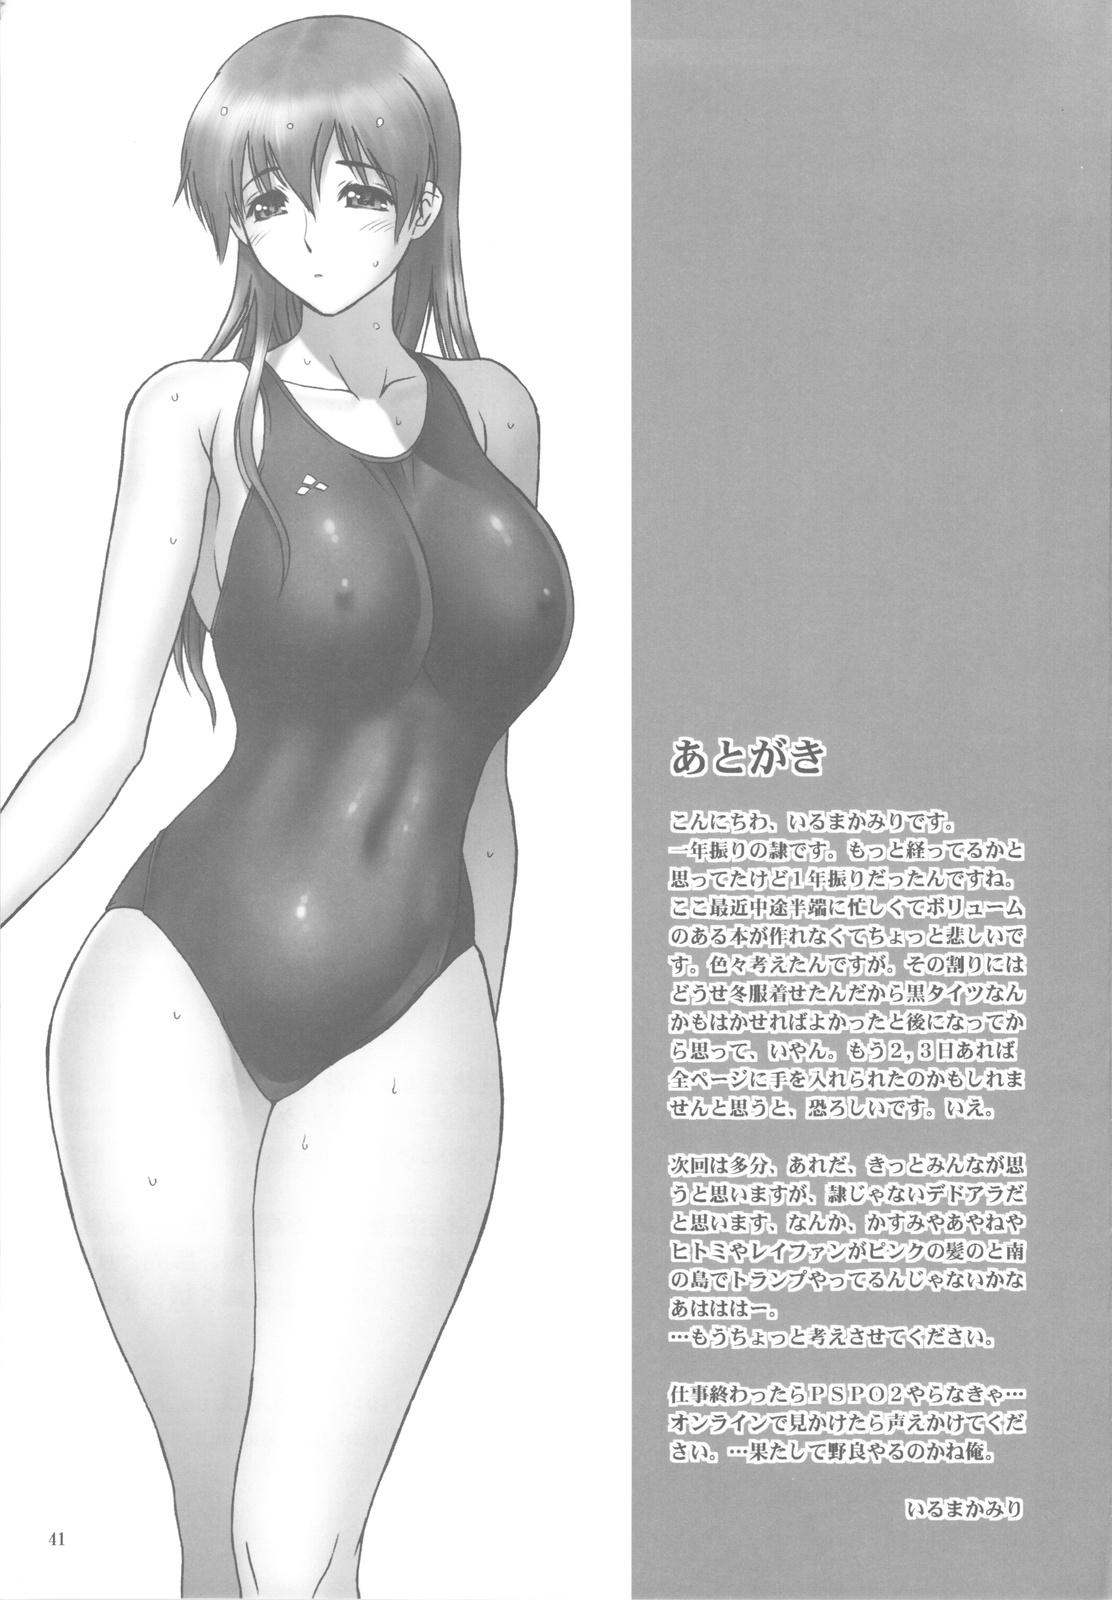 REI07:CHAPTER06 40